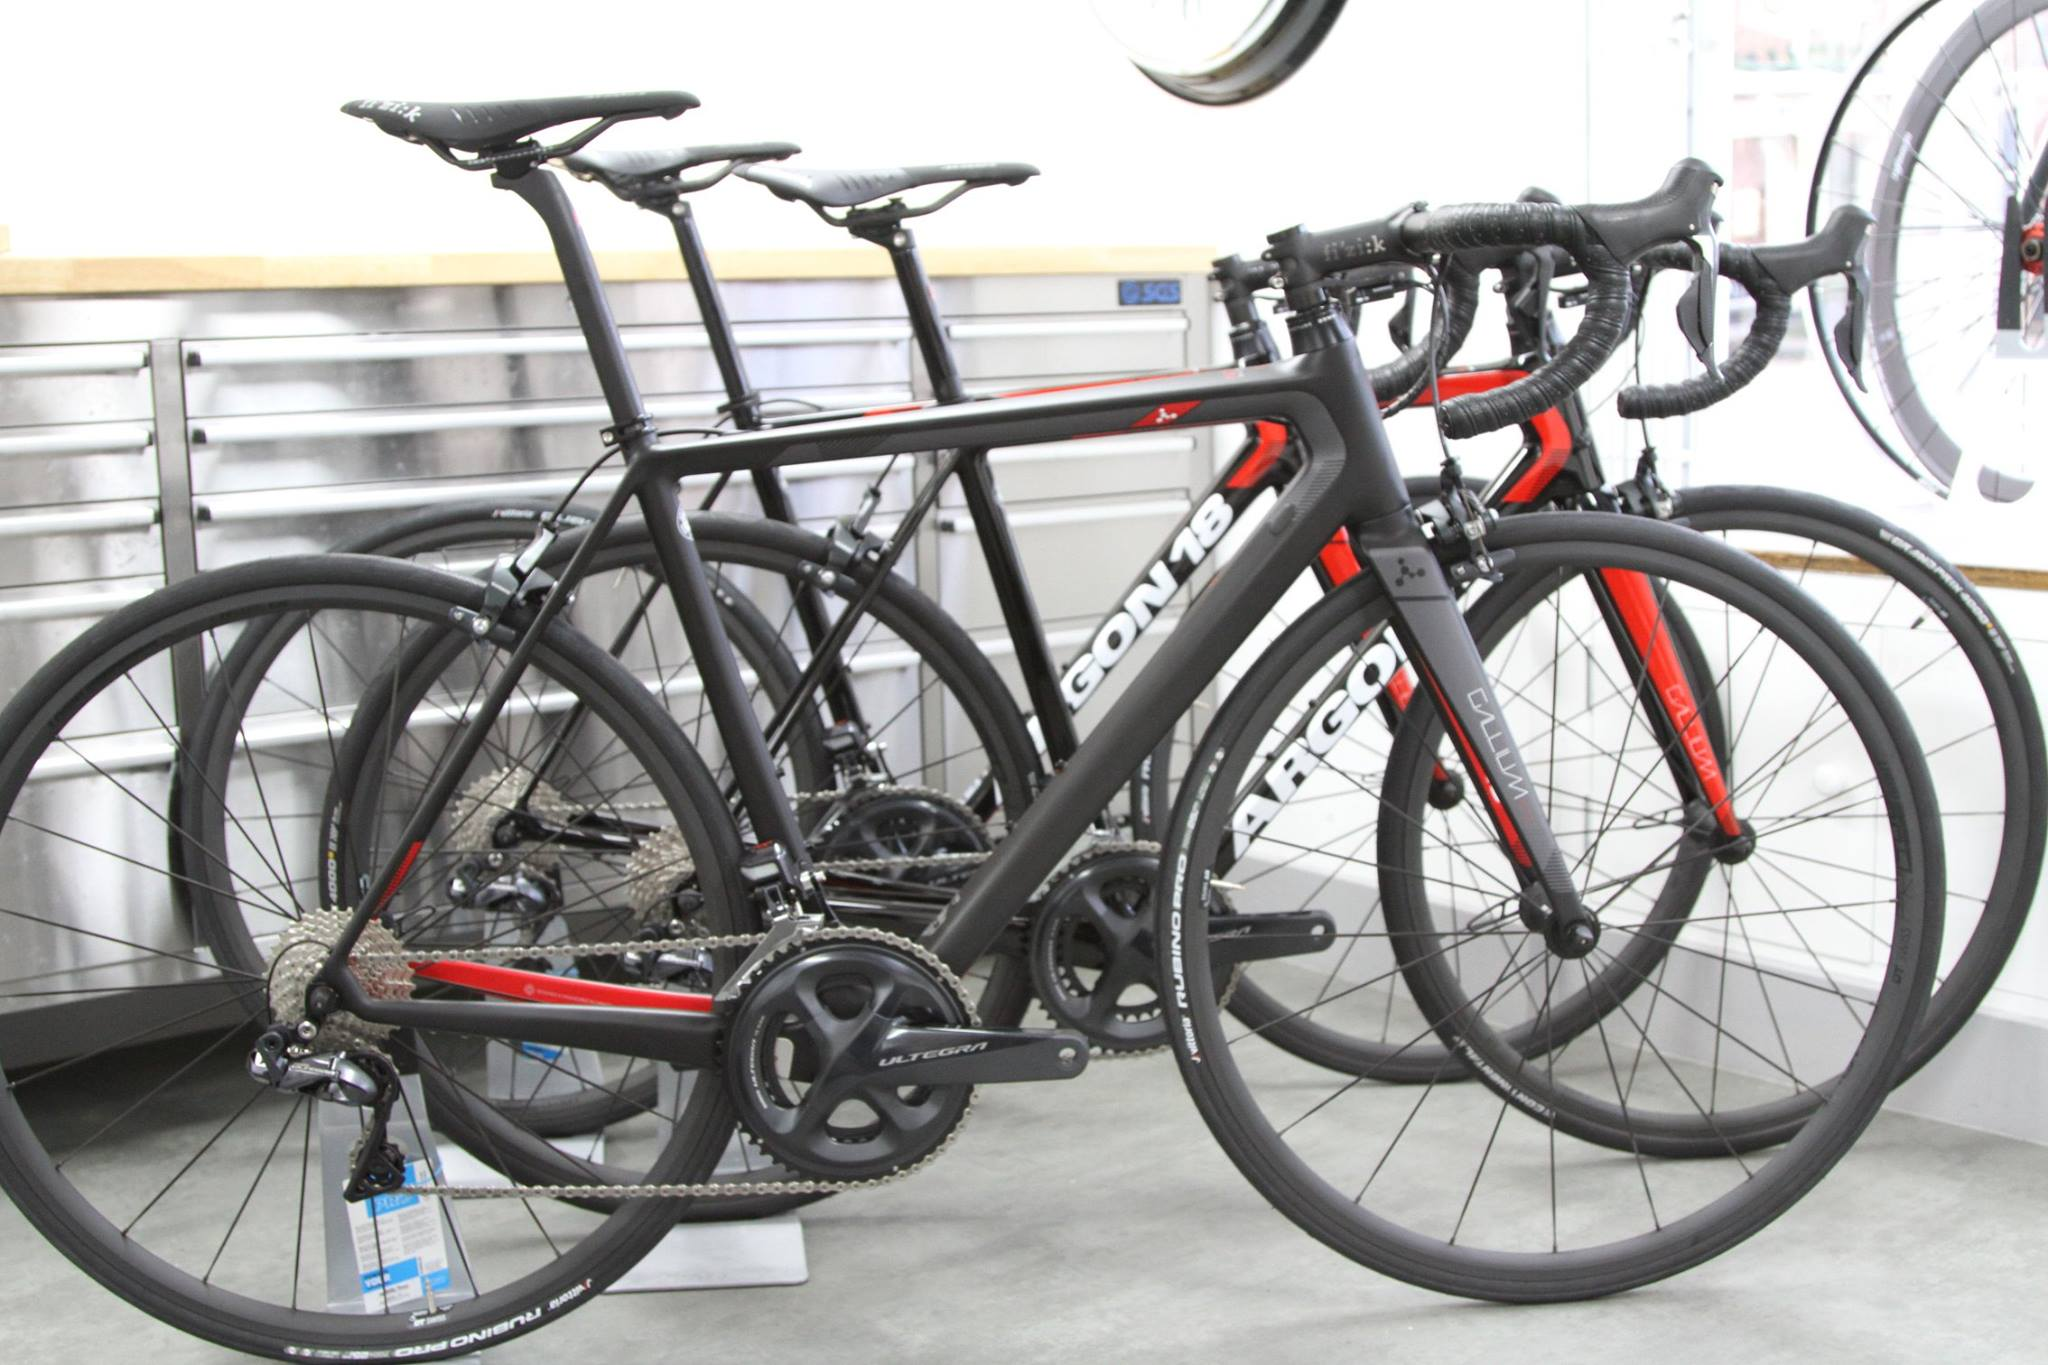 ARGON18   At Service de Velo we have a long standing relationship with Argon 18.We can now offer our collection range of bikes designed with the balance of value and design all beautifully built,sized and fitted for you in store.